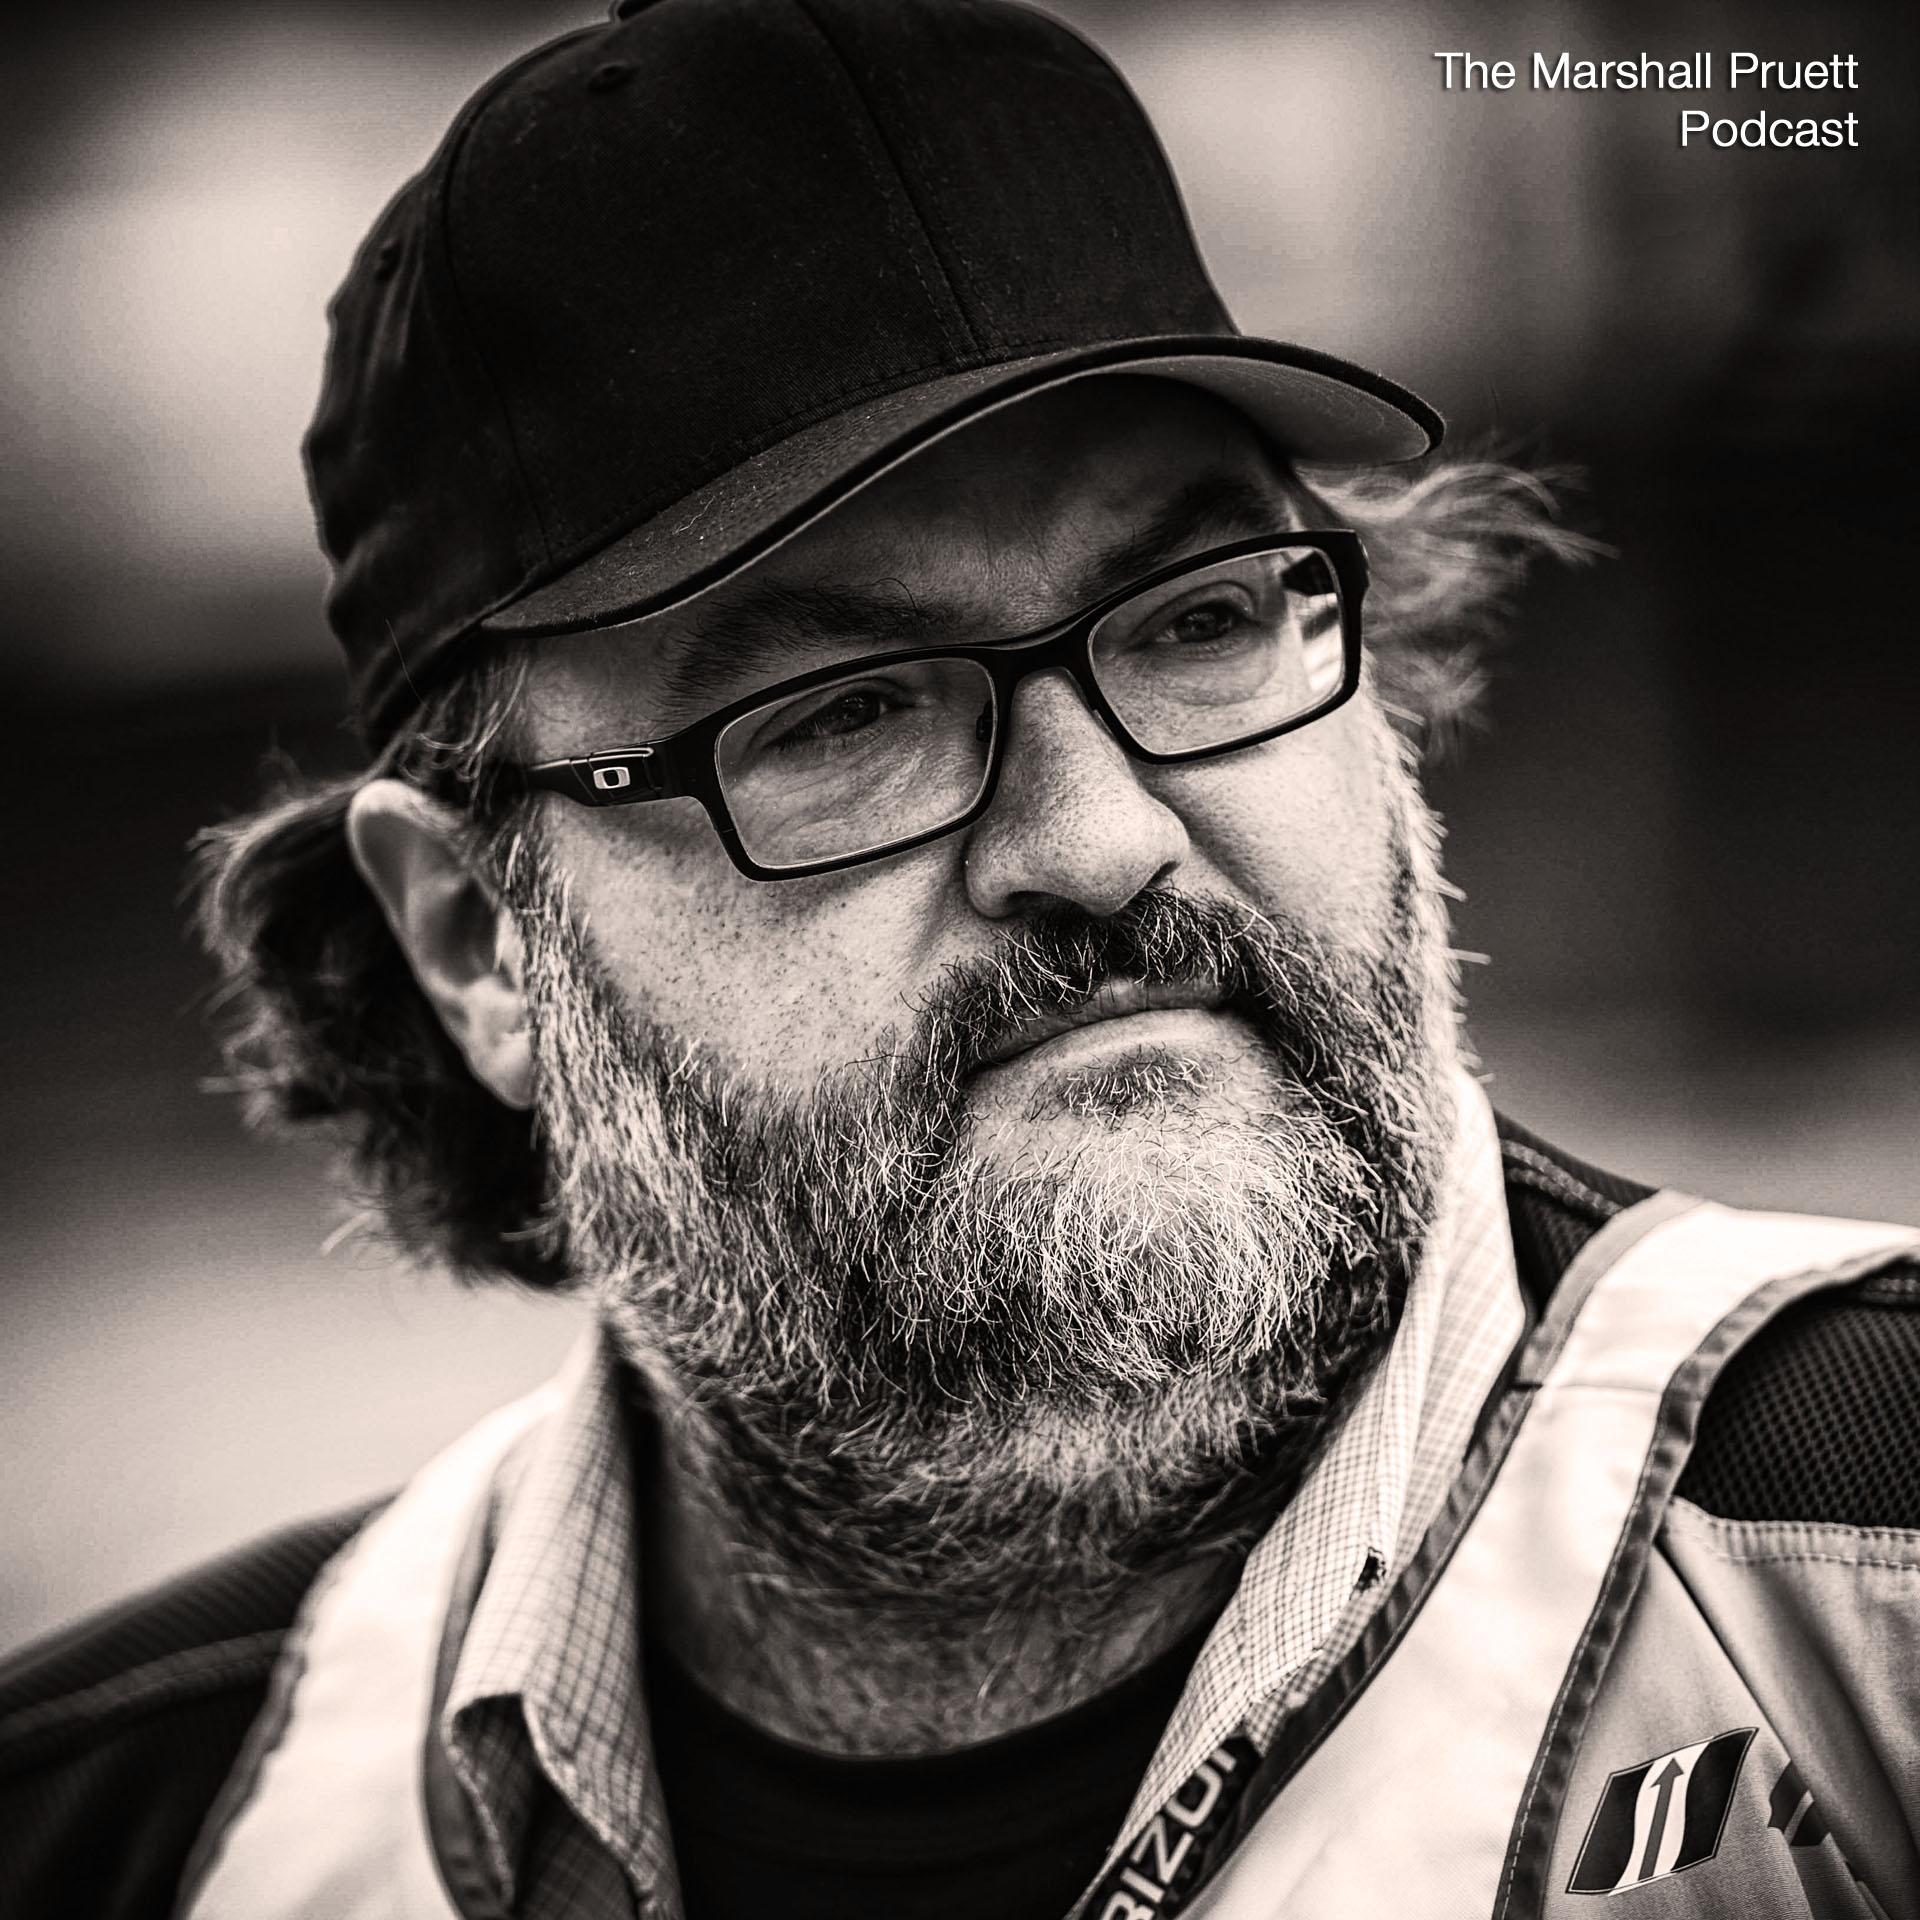 The Marshall Pruett Podcast